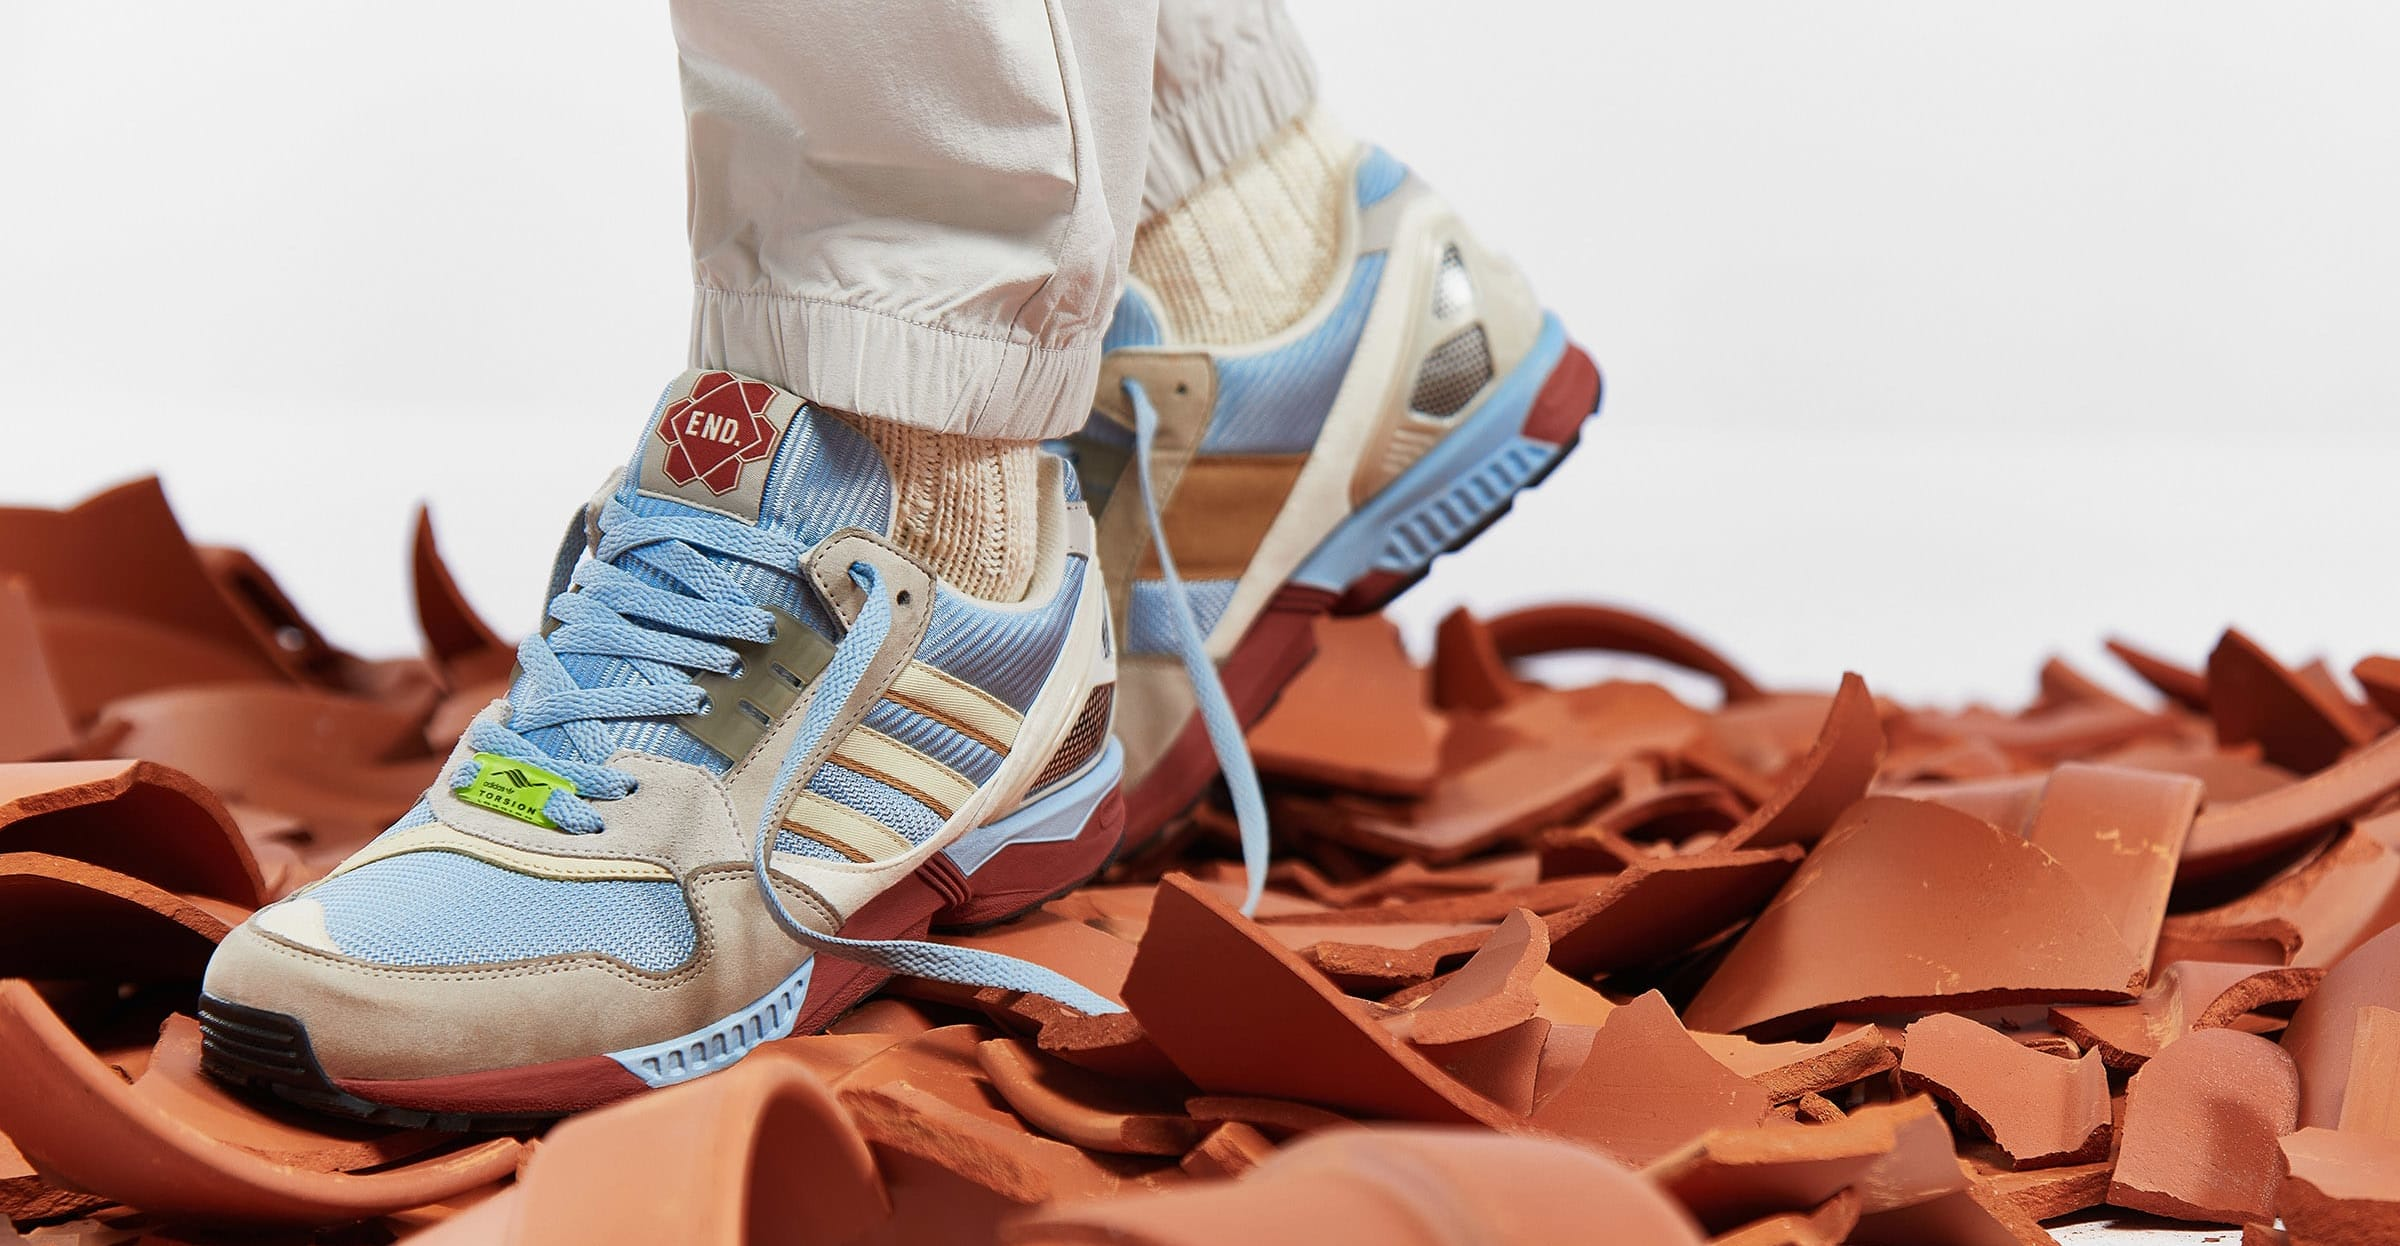 End. Clothing x Adidas ZX 9000 'Kiln' FW5022 Lateral